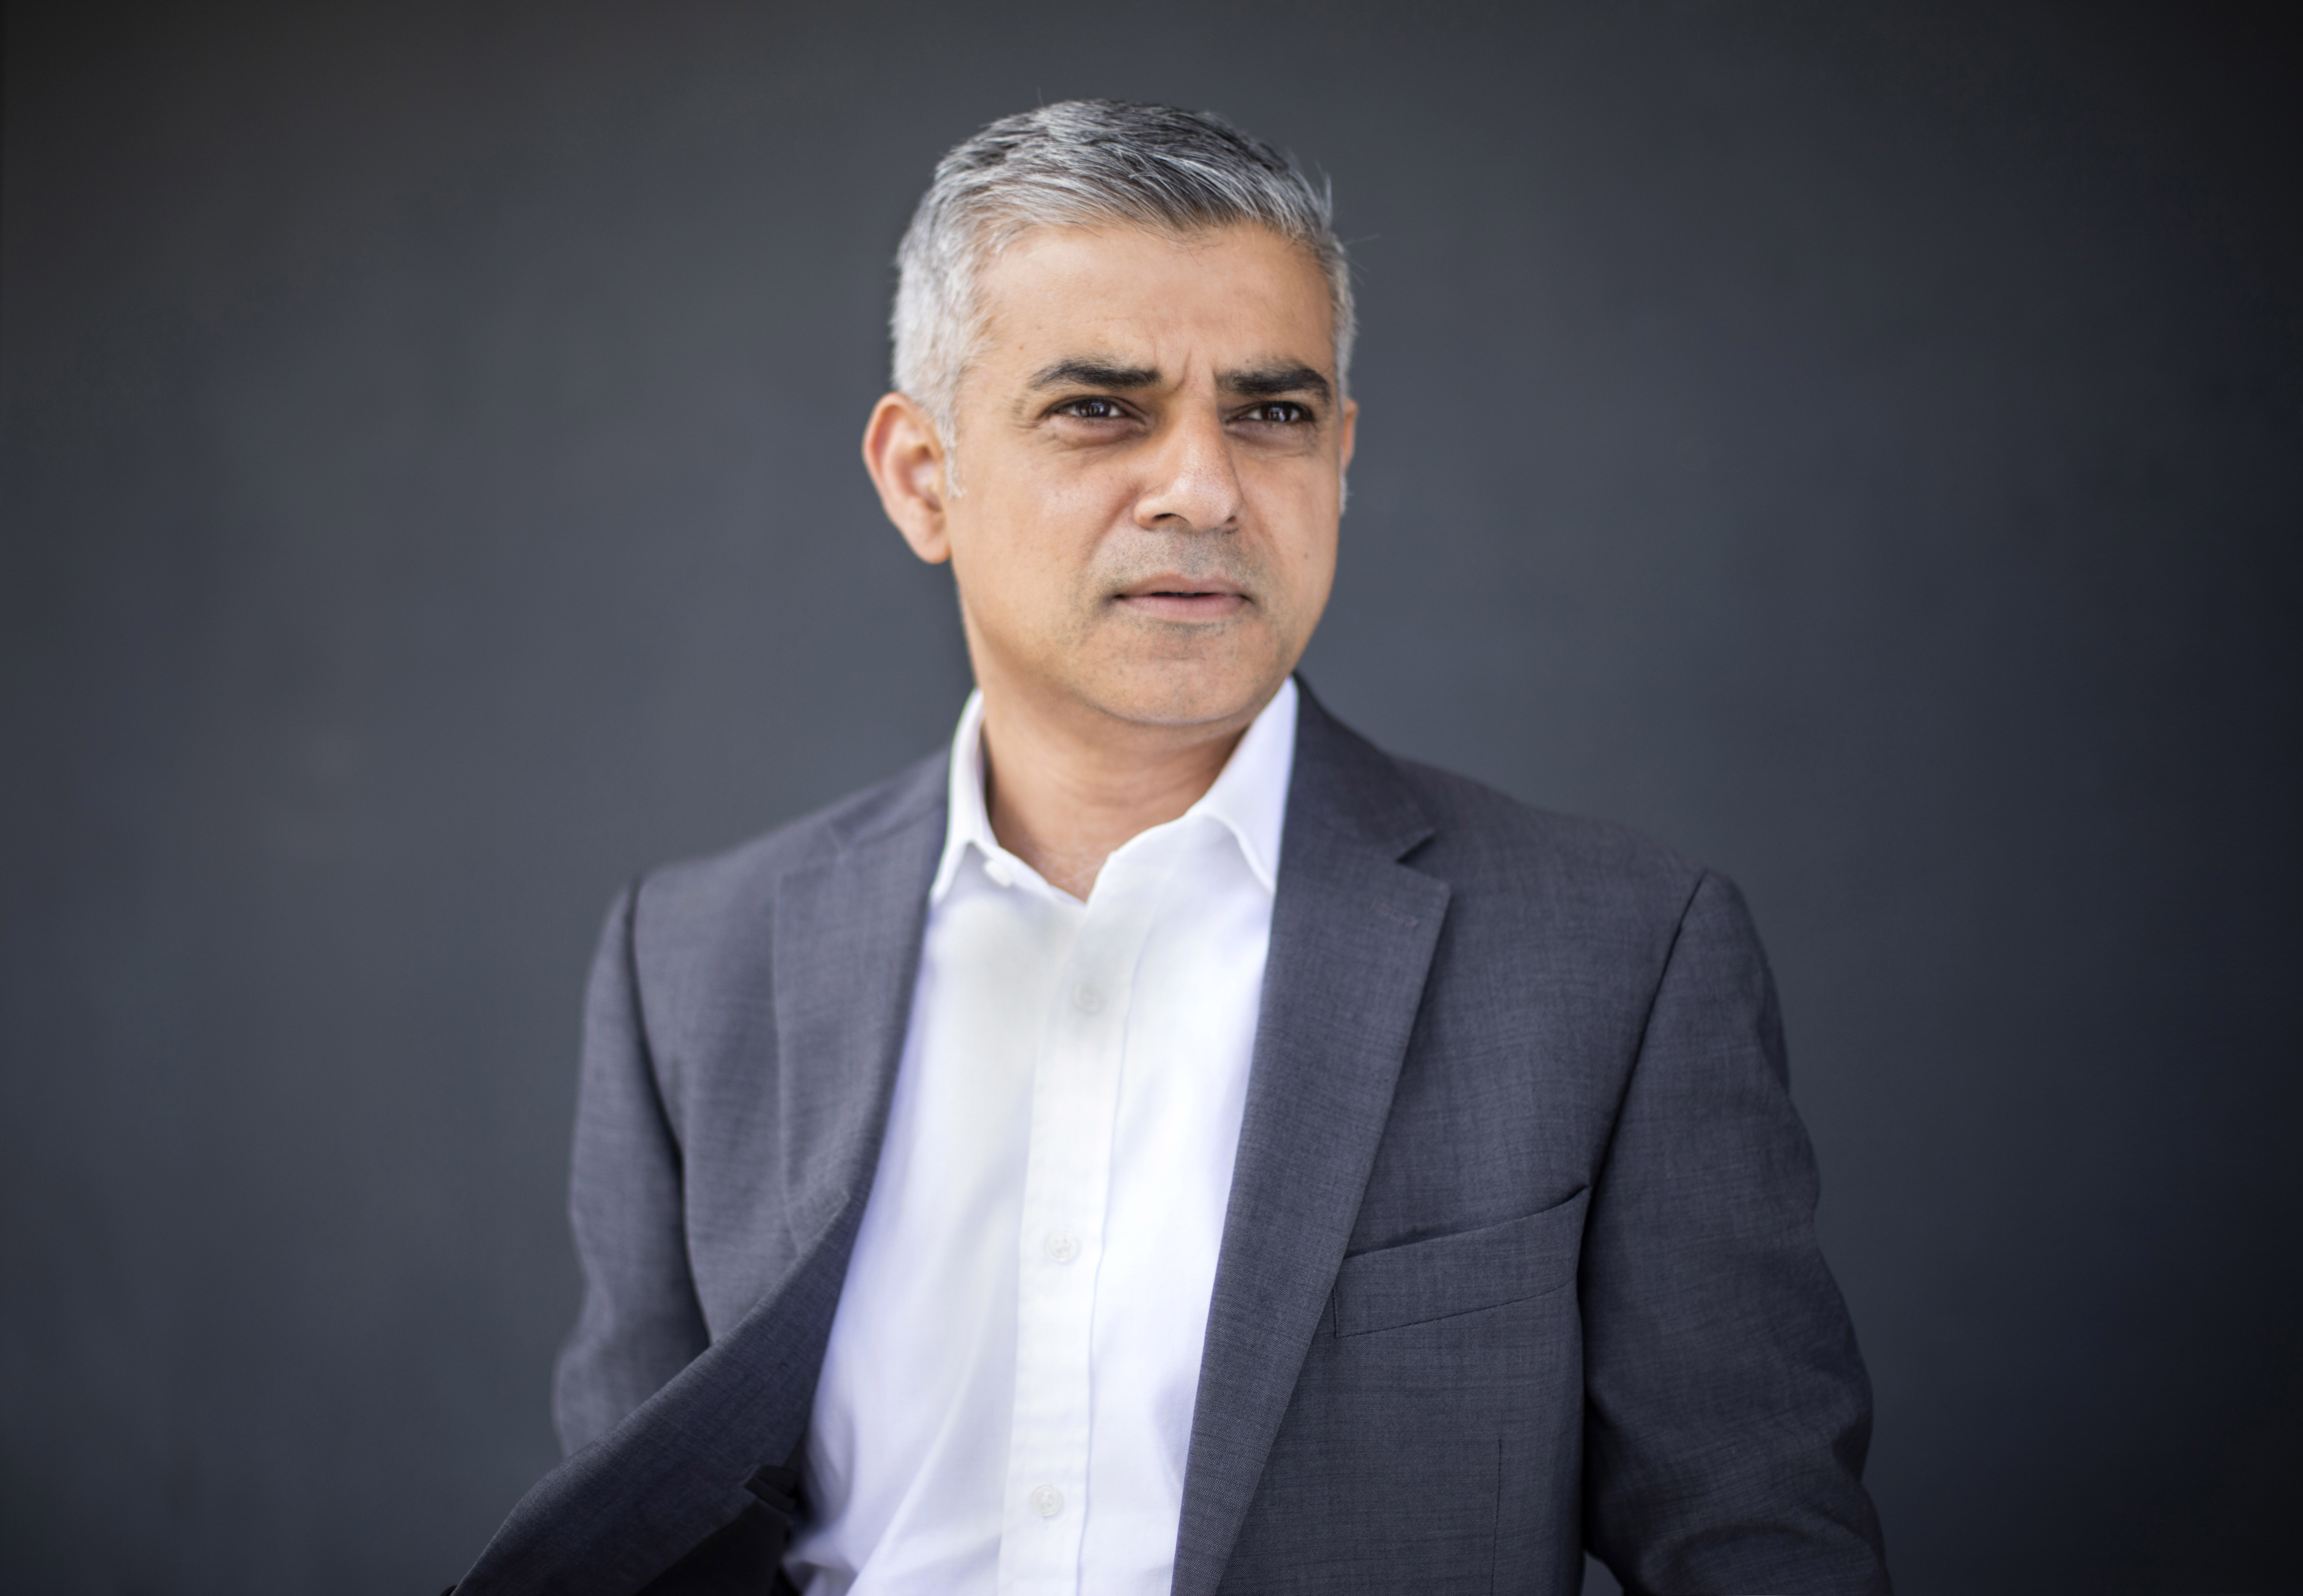 Sadiq Khan, London's newly elected mayor, poses for a portrait in London on May 8, 2016